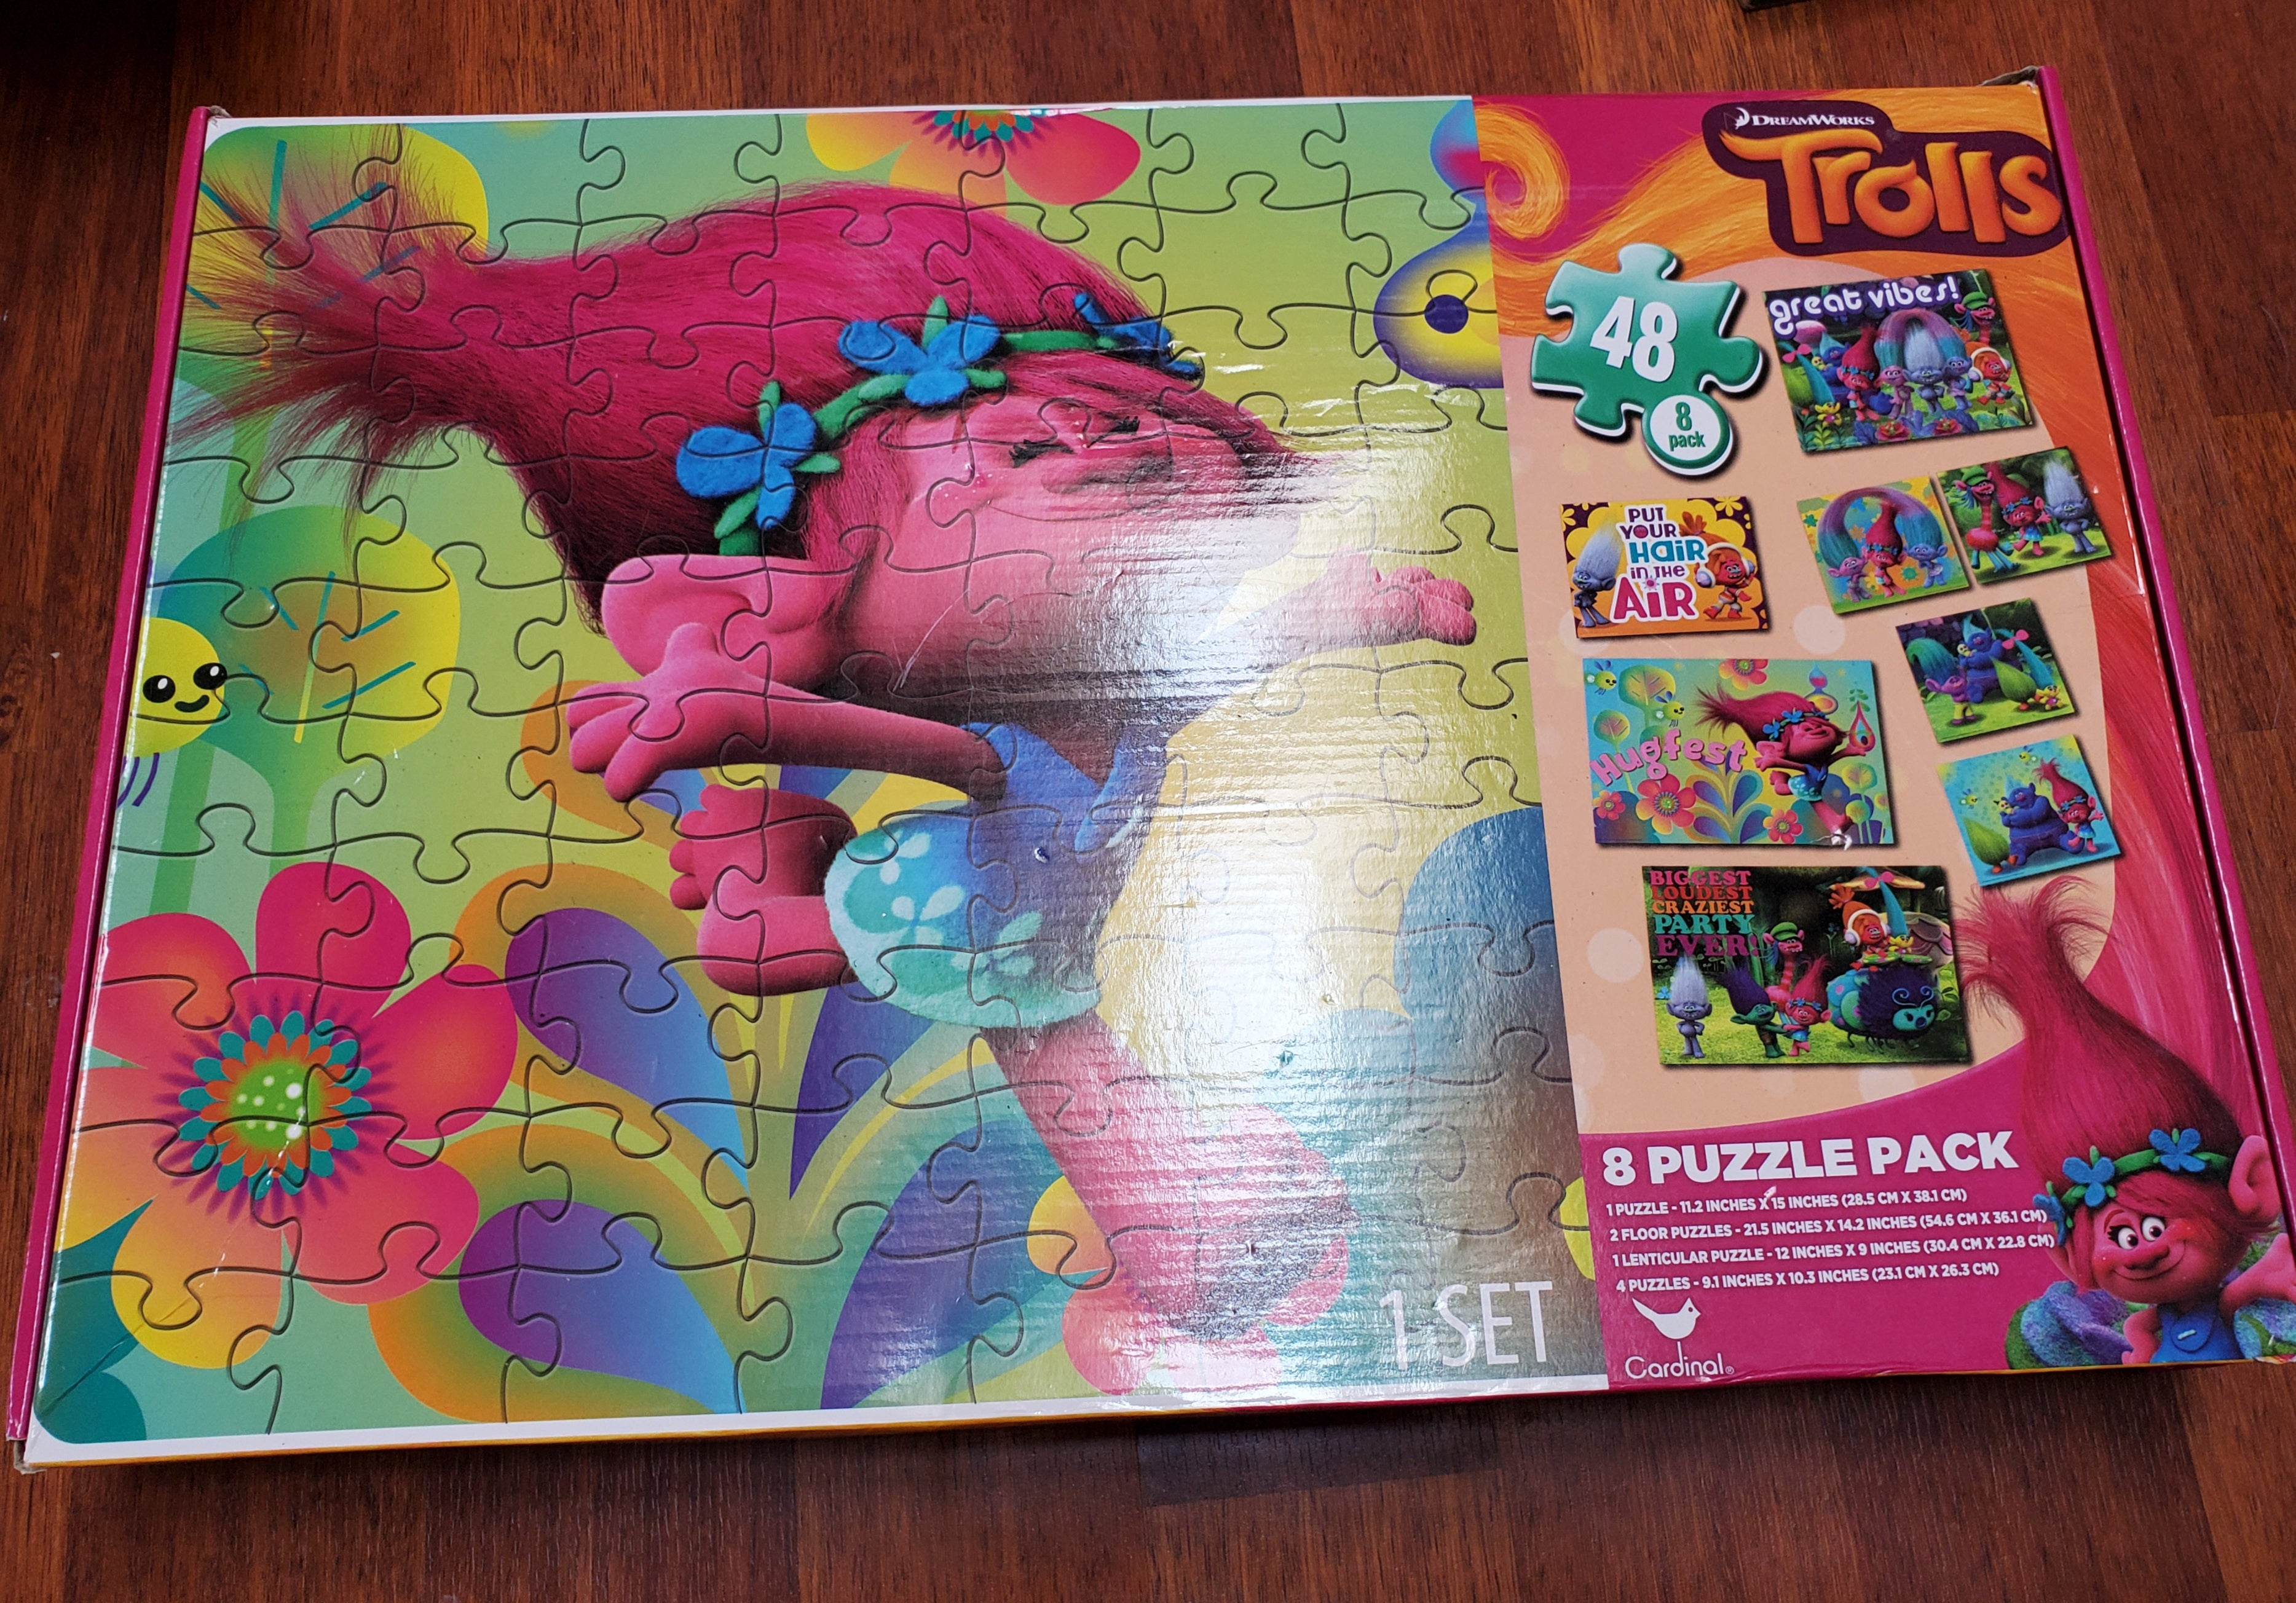 Trolls 8 Puzzle pack ONLY 1 PUZZLE OPENED others new in package